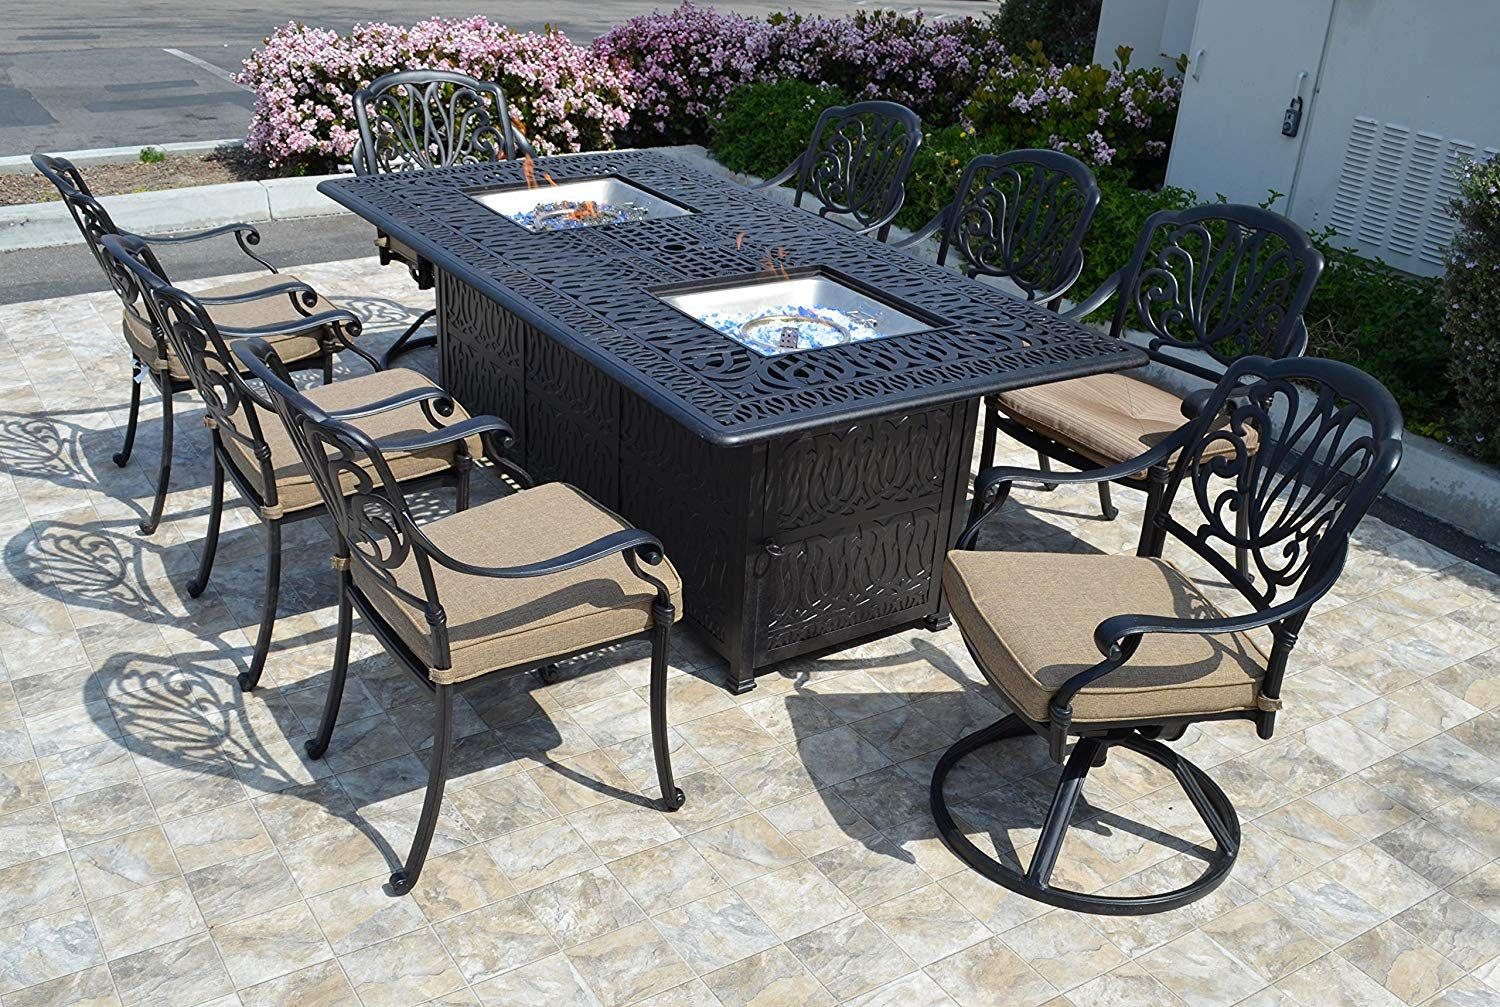 25+ Propane fire pit dining table and chairs Best Seller